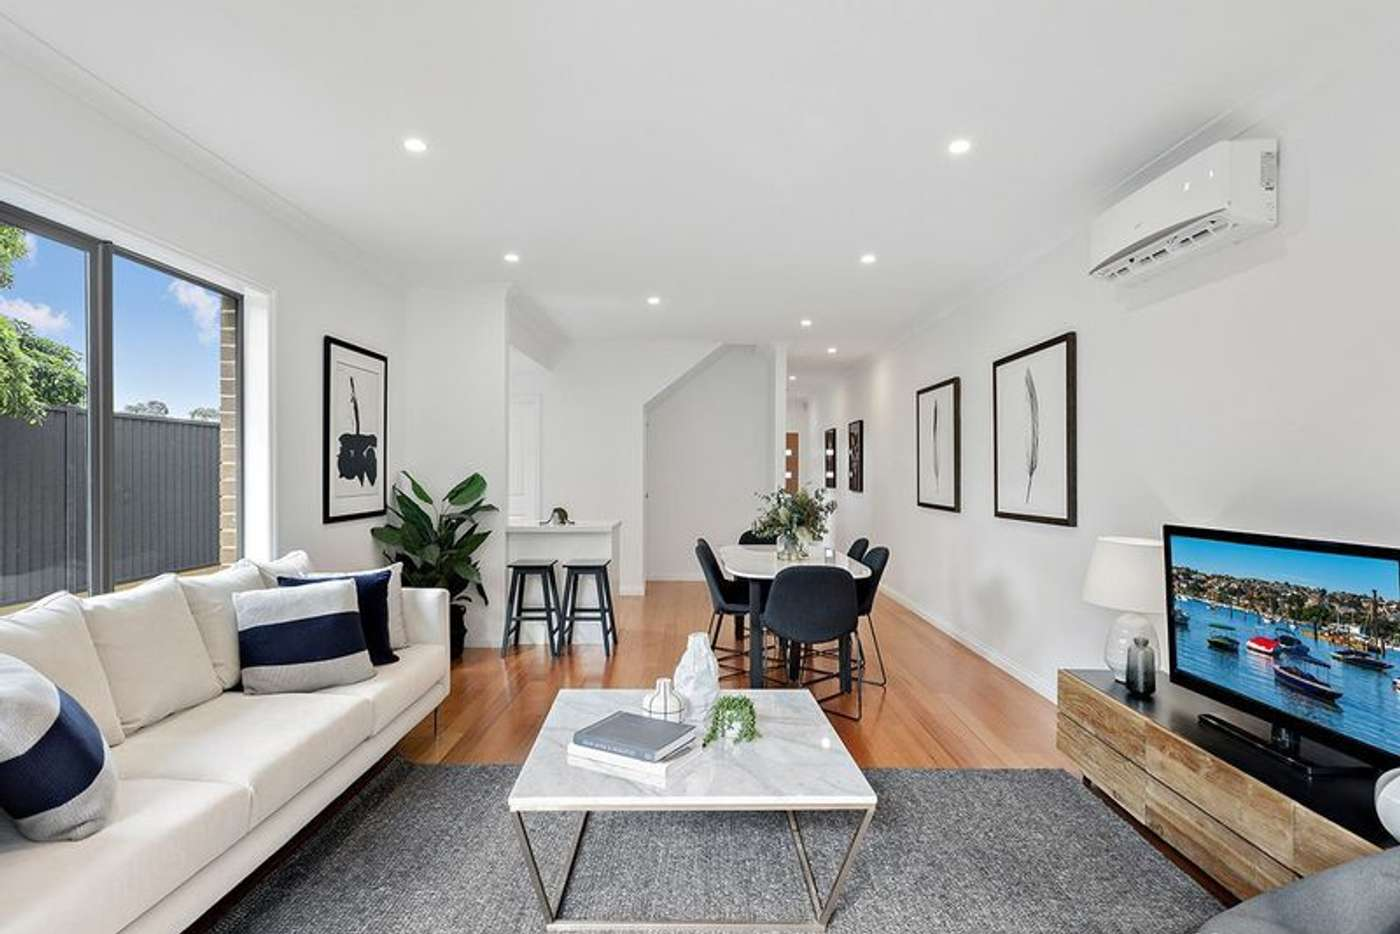 Main view of Homely townhouse listing, 3/21 Diosma Drive, Glen Waverley VIC 3150